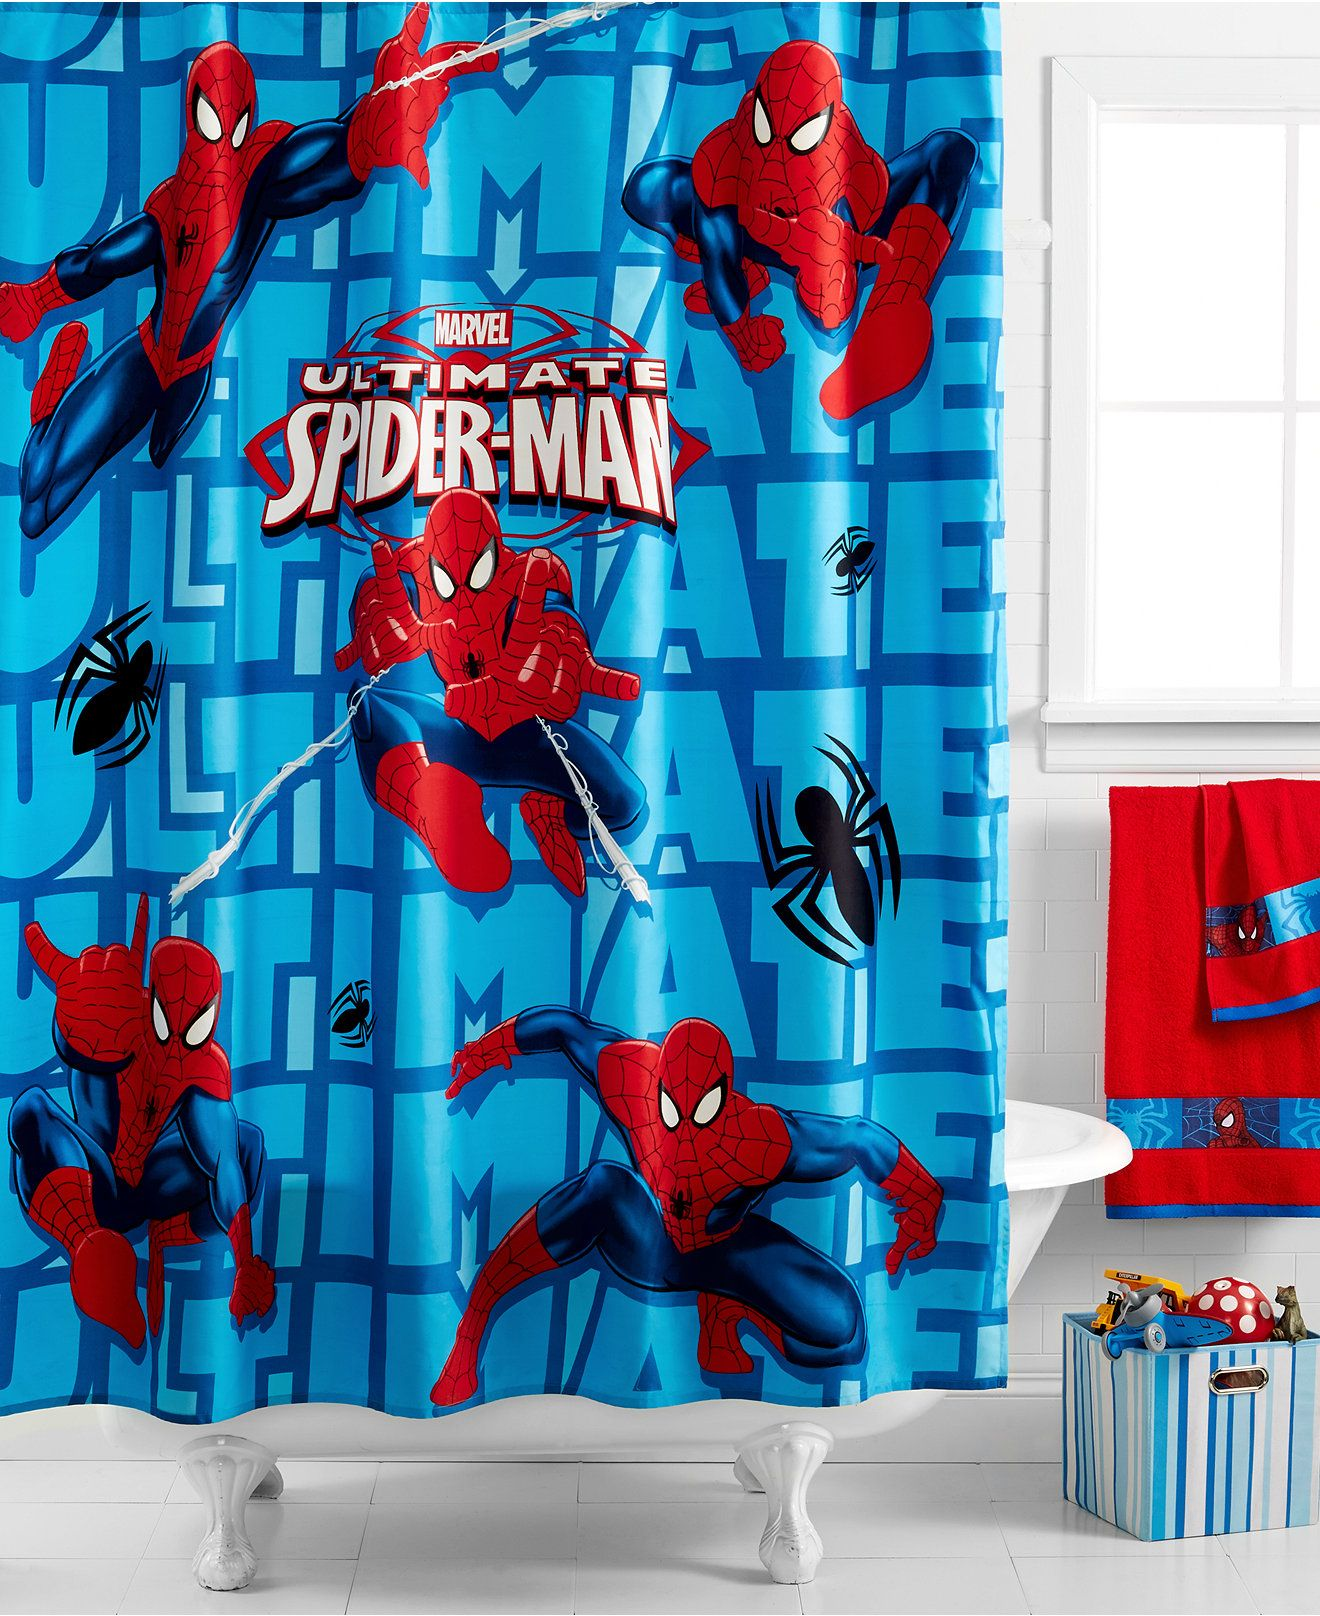 Are Your Spidey Senses Tingling Probably Because You Just Found The Perfect Shower Curtai Spiderman Bedroom Multi Panel Wall Canvas Marvel Spiderman